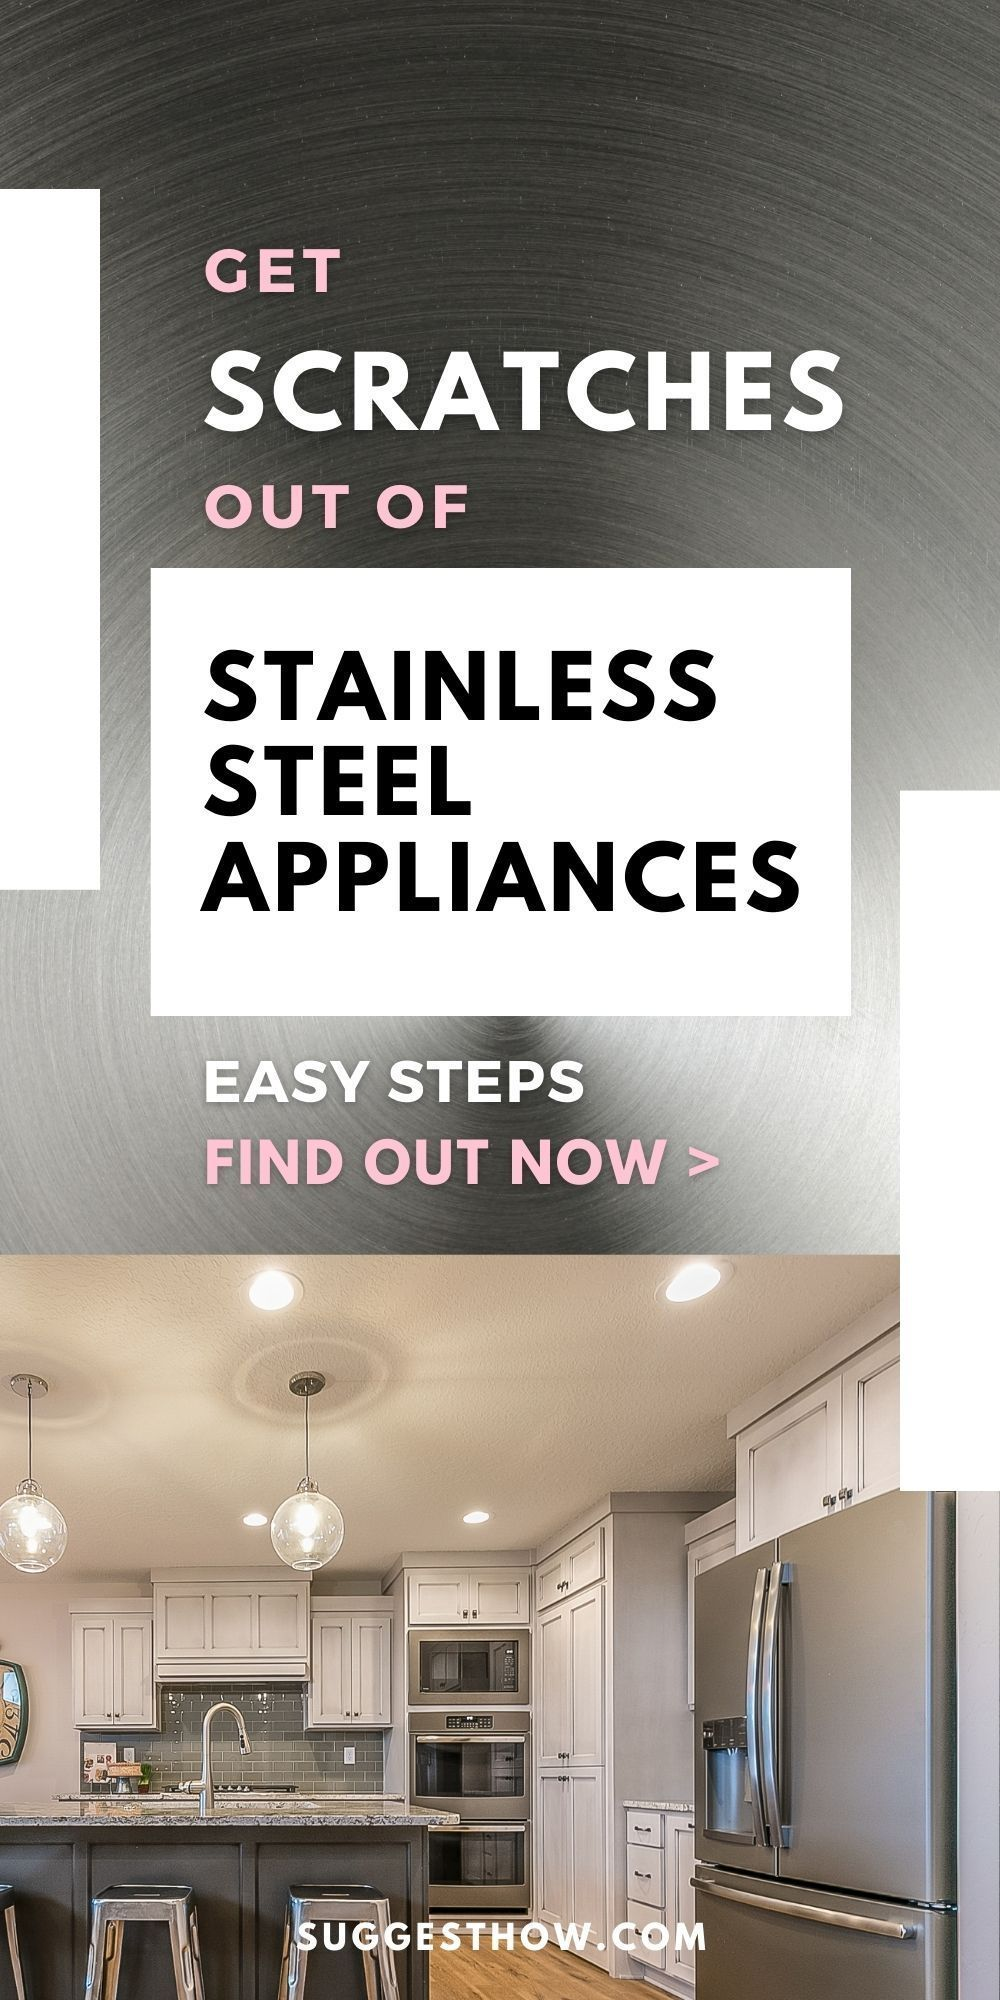 How To Get Scratches Out Of Coated Stainless Steel Appliances In 2021 Home Hacks Diy Cleaning Products Cleaning Appliances